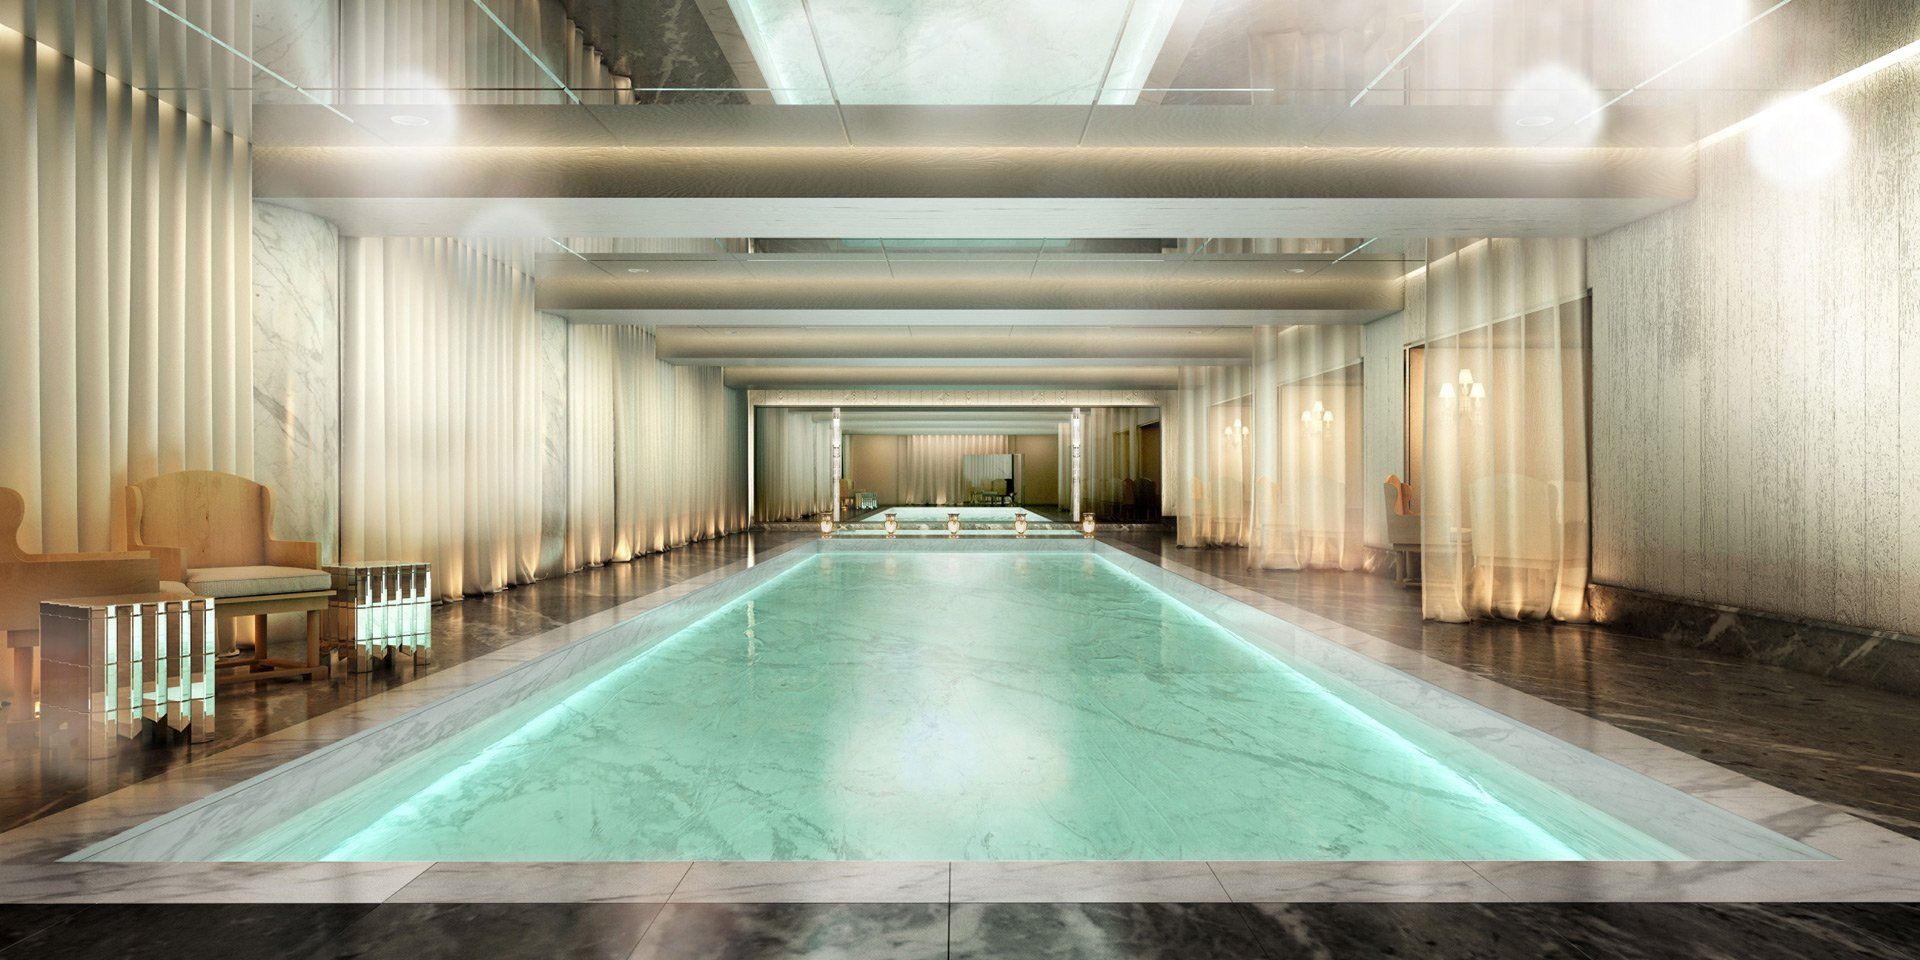 Baccarat Hotel And Residences New York Will Open In 2014